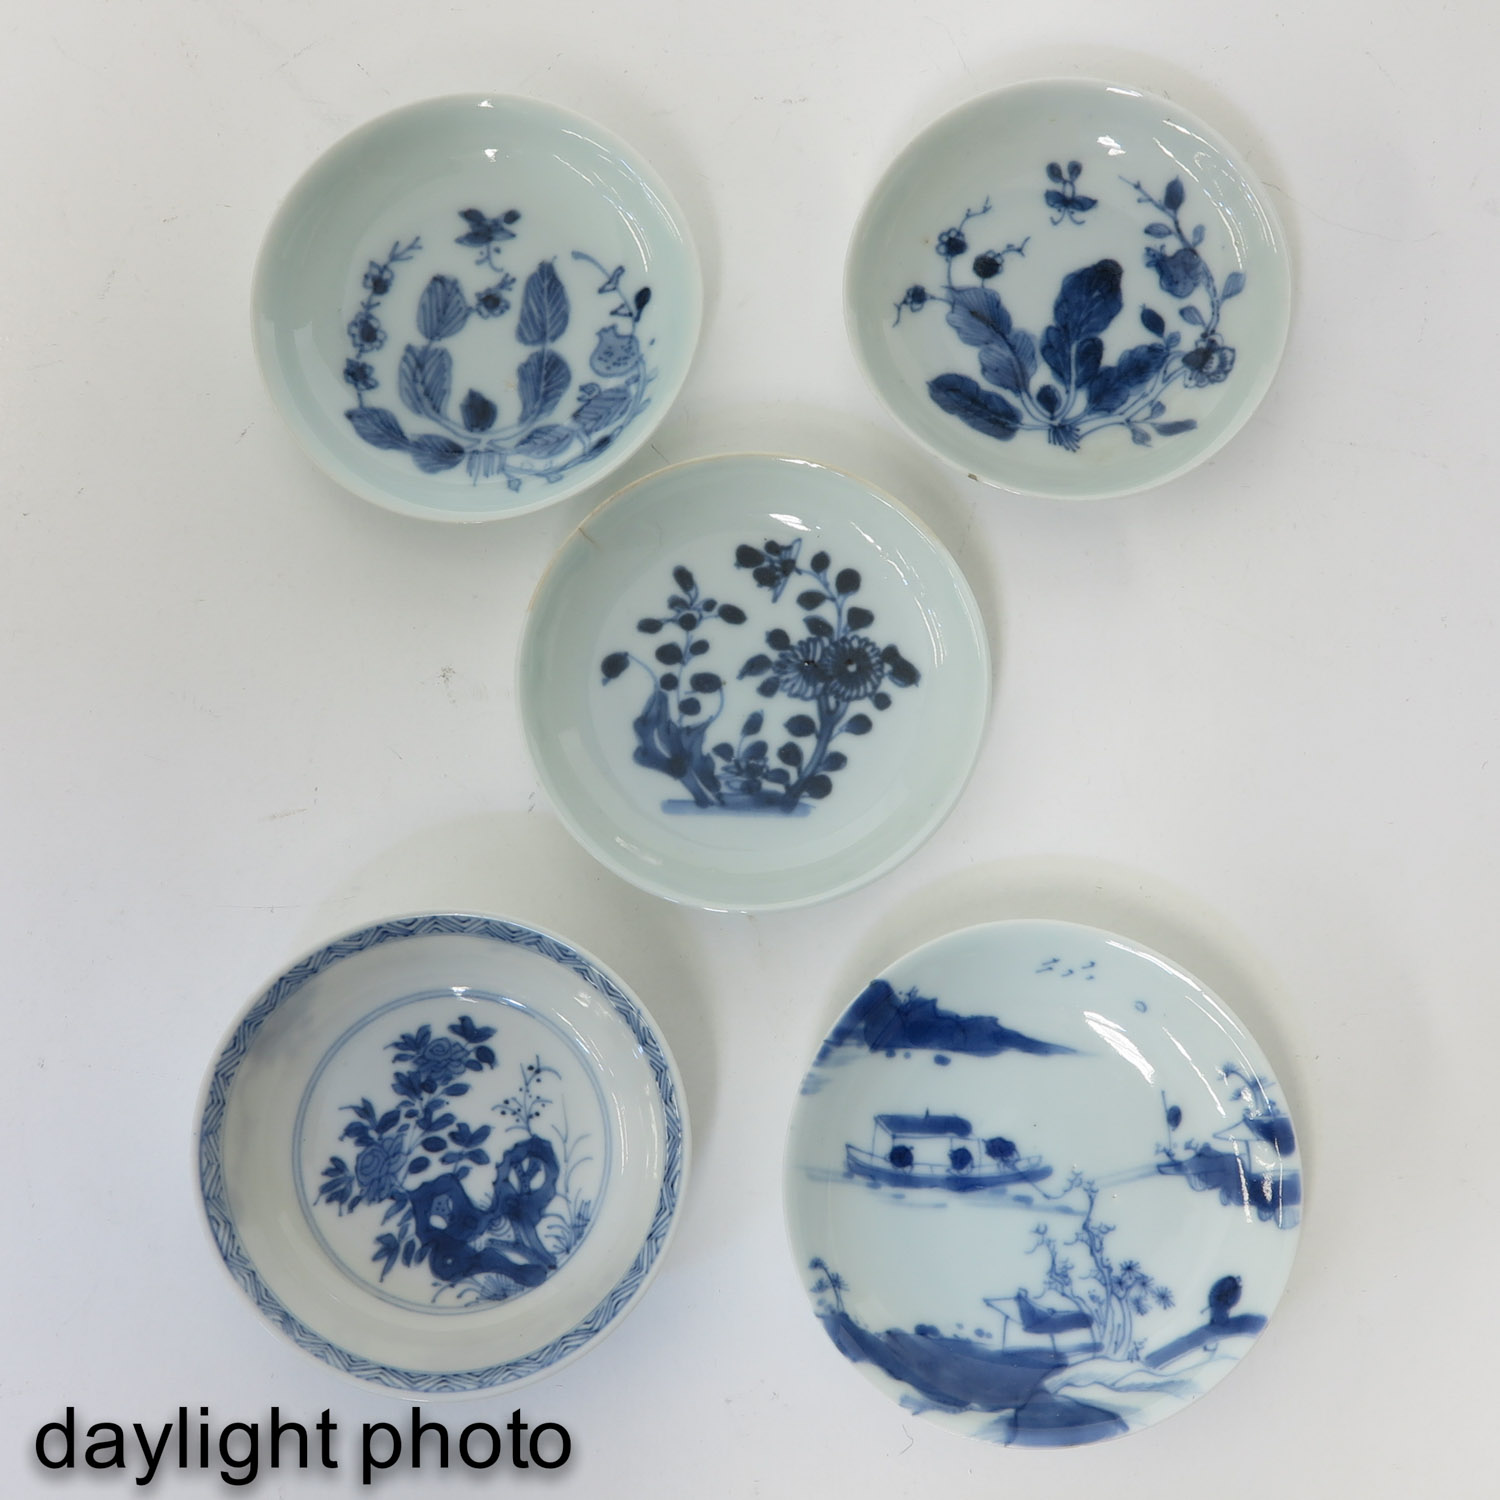 A Collection of 11 Small Plates - Image 9 of 10